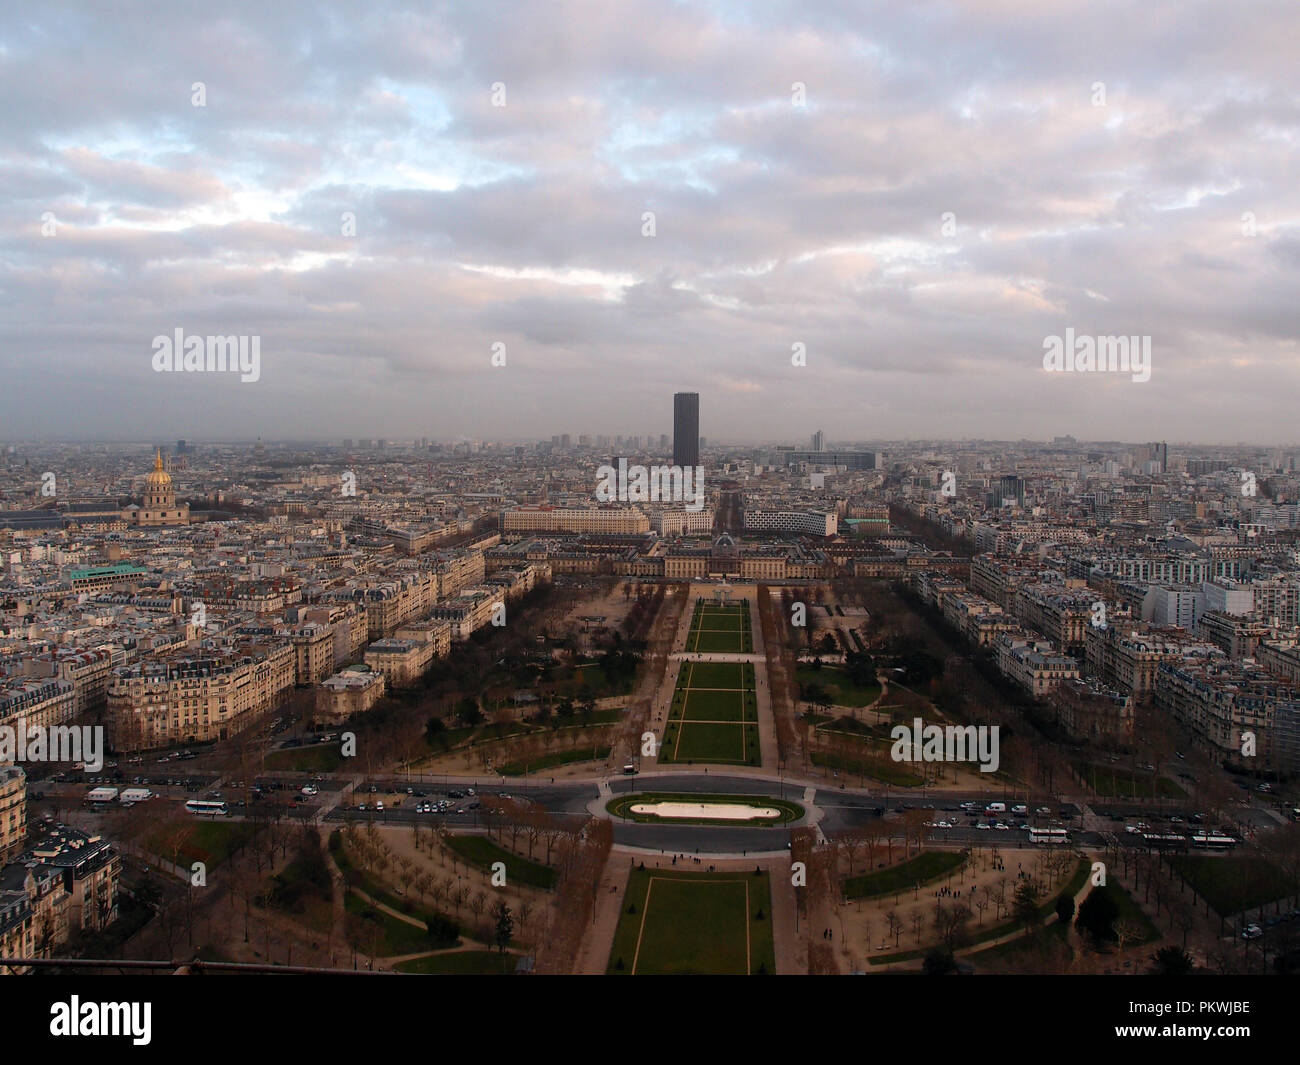 Looking at Paris from the top of the Eiffel Tower - Stock Image